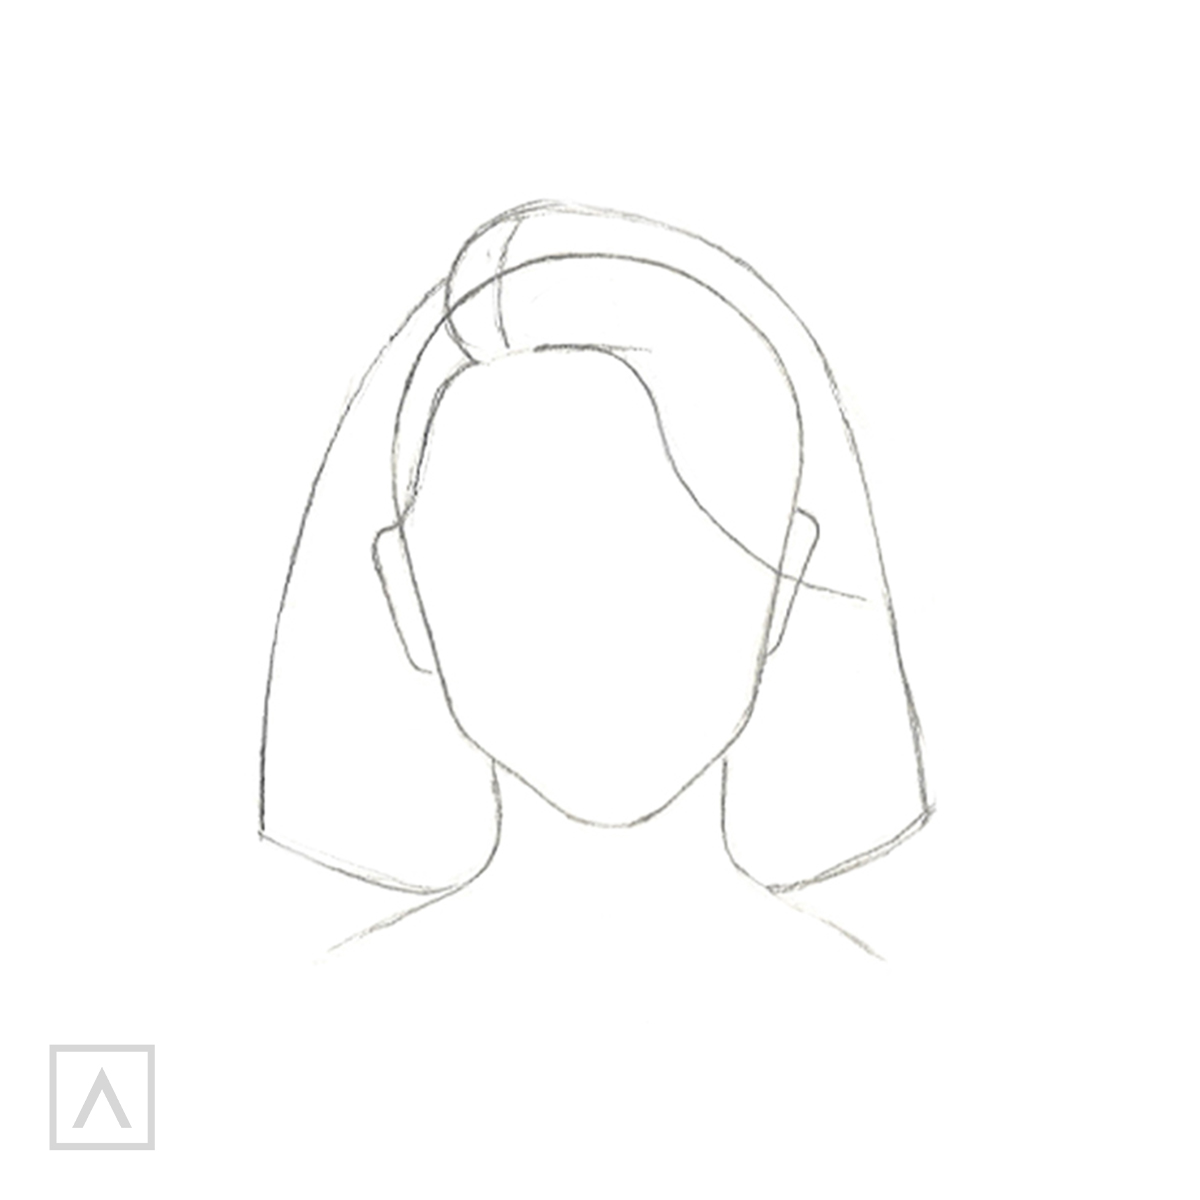 How to Draw Short Hair - Step 3